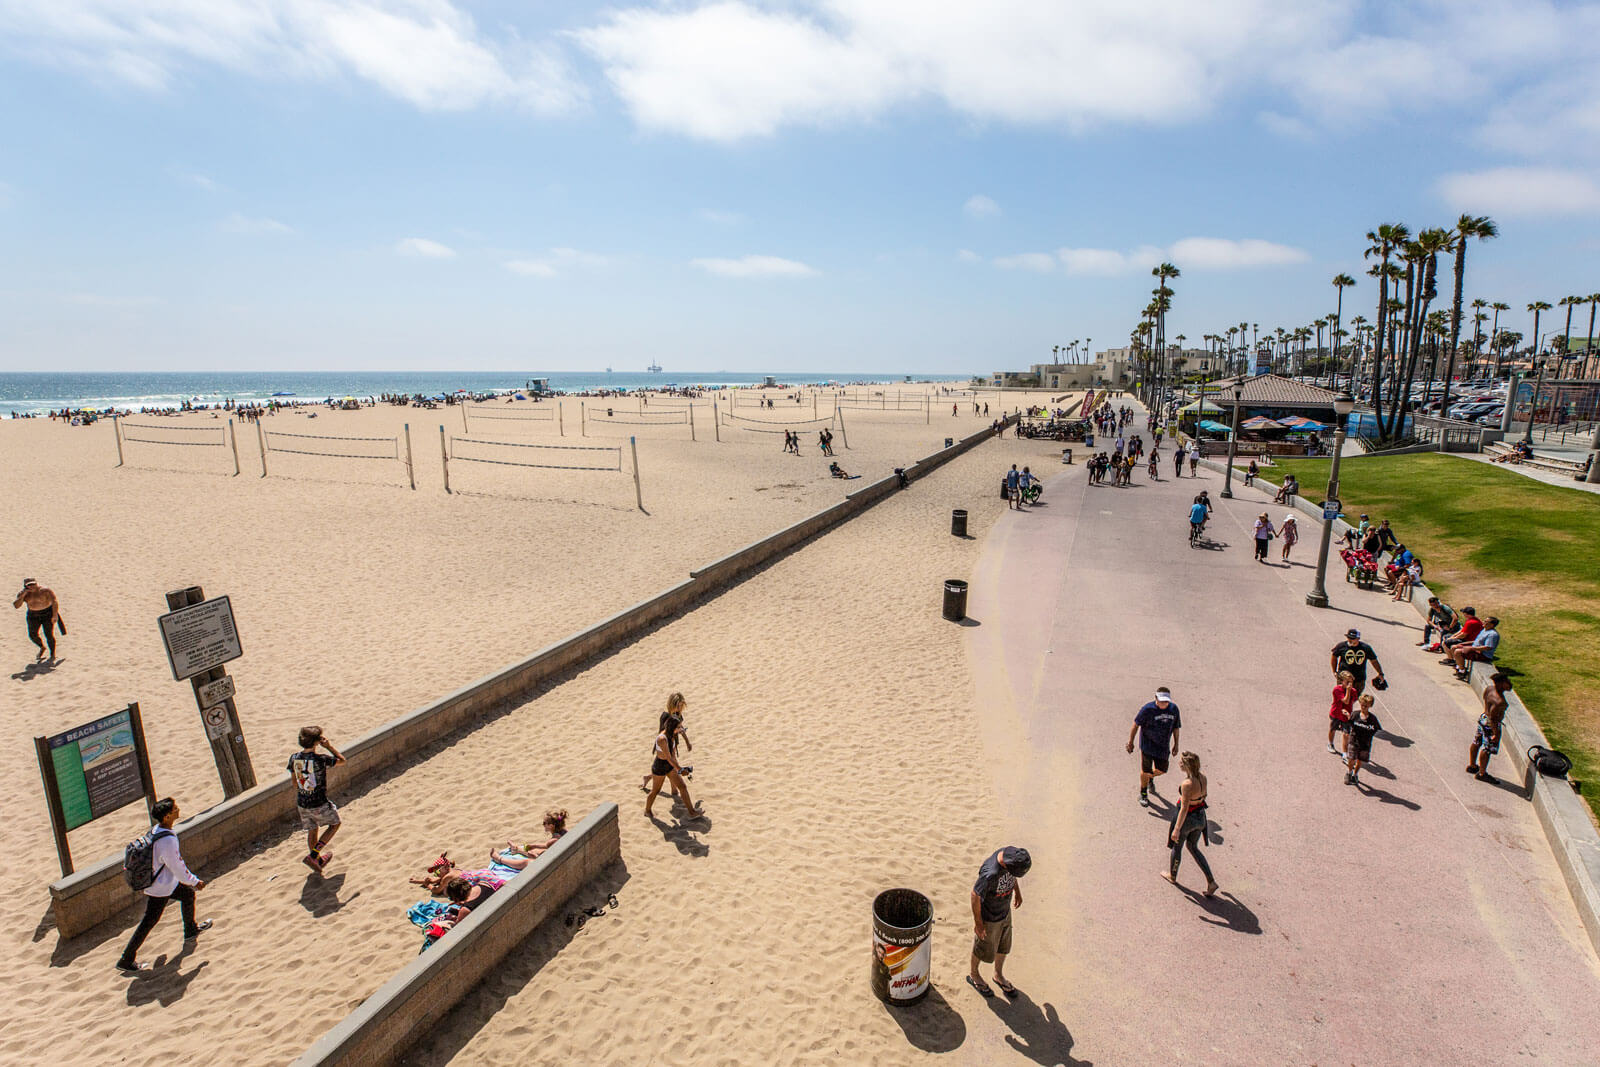 Be Close to the Beach at Boardwalk by Windsor, 7461 Edinger Ave., Huntington Beach